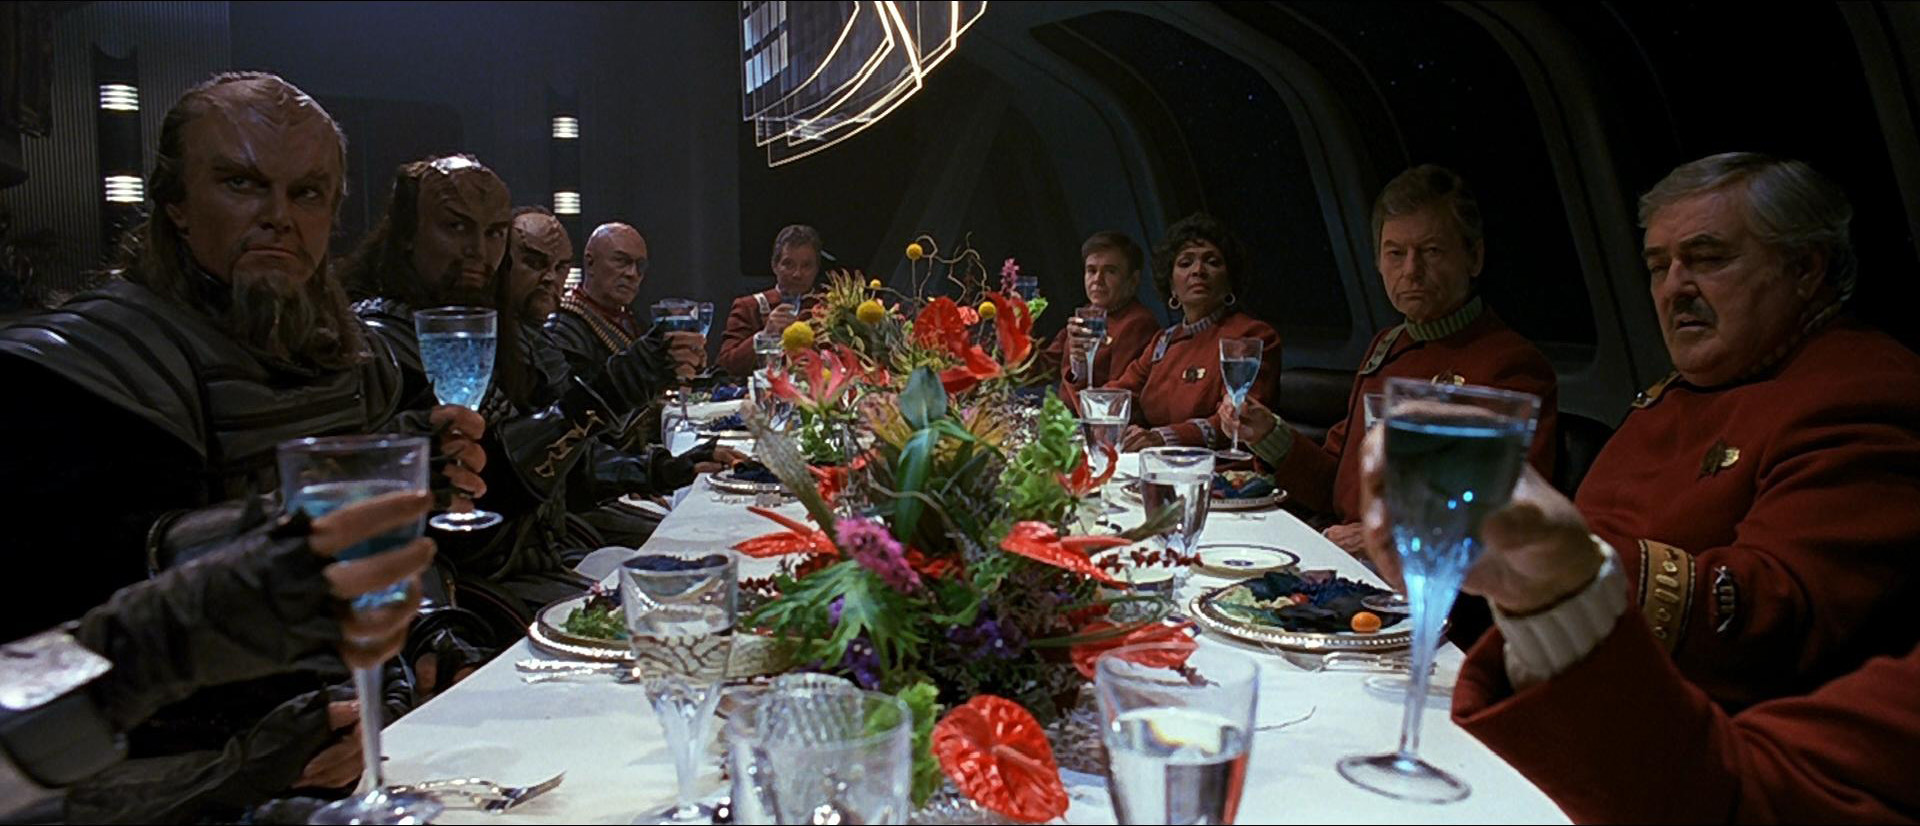 Star-Trek-VI-Dinner.jpeg